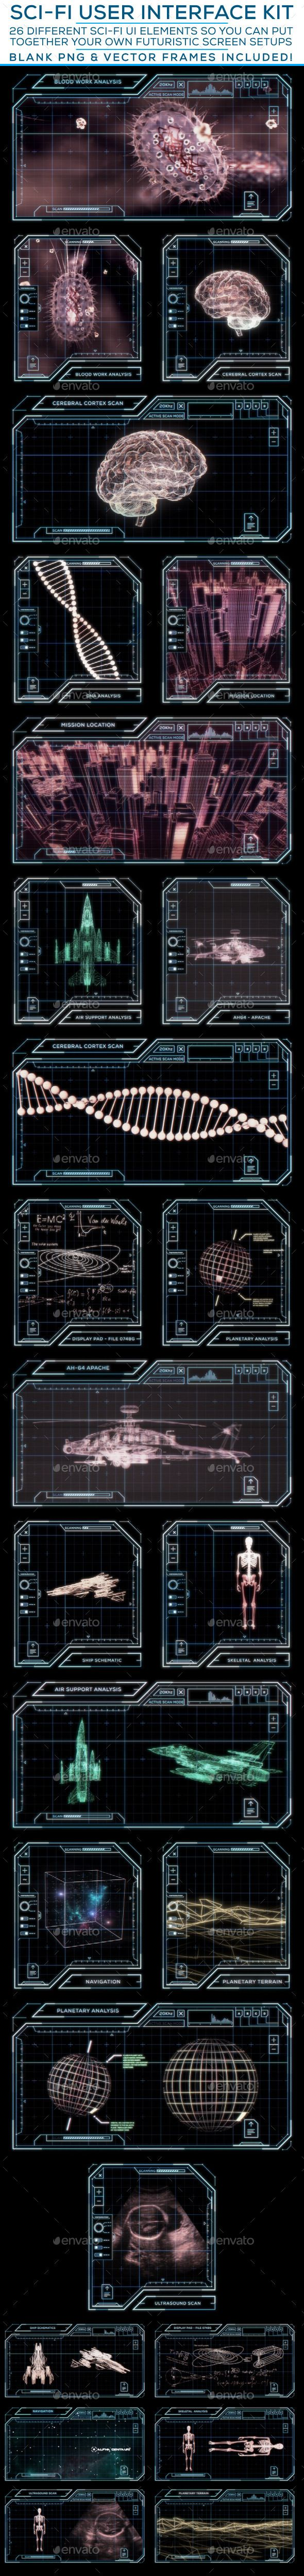 Sci-Fi User Interface Kit Template PSD #design #ui Download: http://graphicriver.net/item/scifi-user-interface-kit/12408671?ref=ksioks